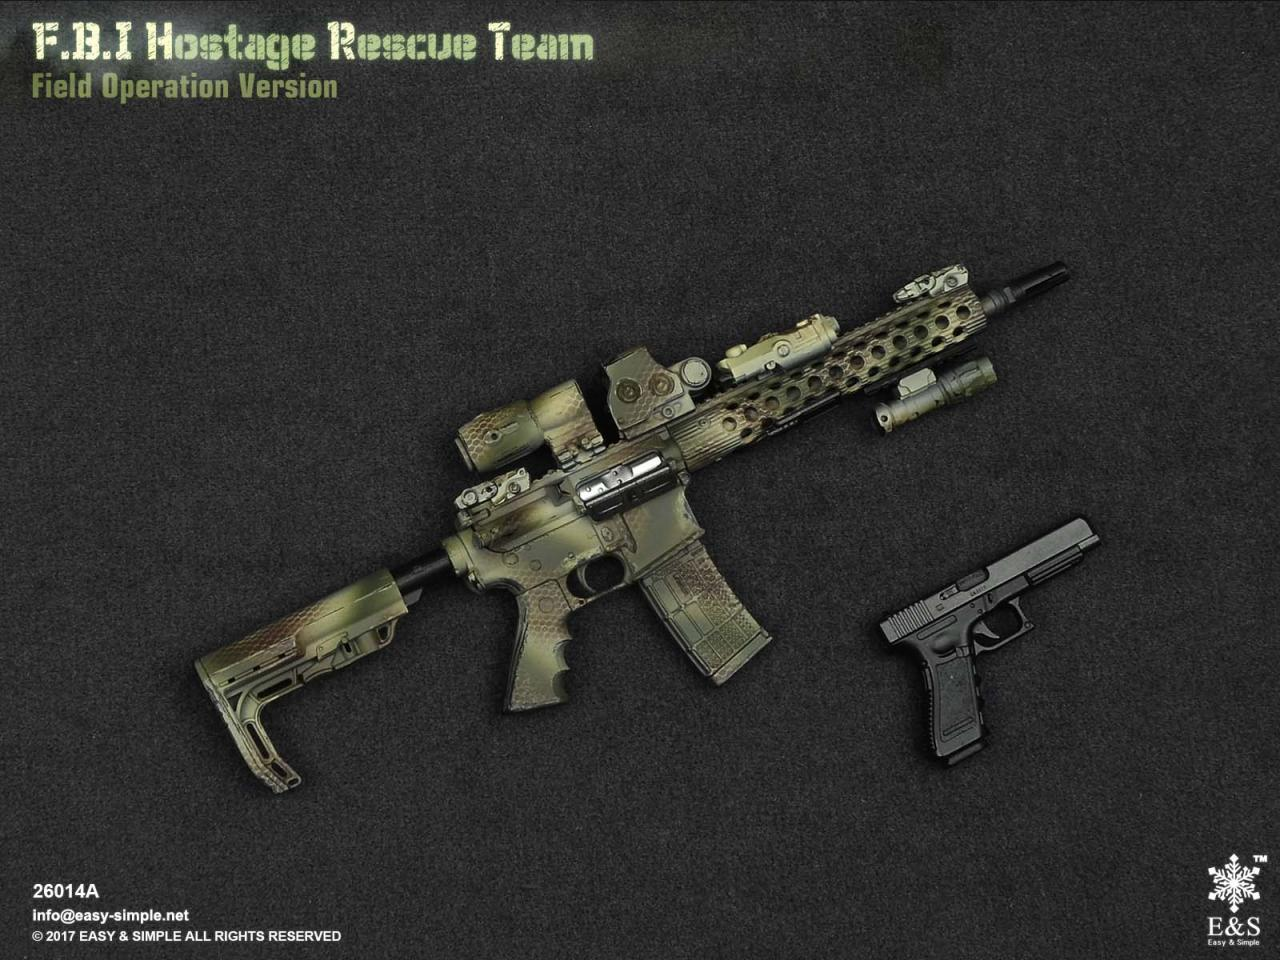 Easy&Simple 26014 FBI Hostage Rescue Team (2 Versions)-26014a-29-jpg